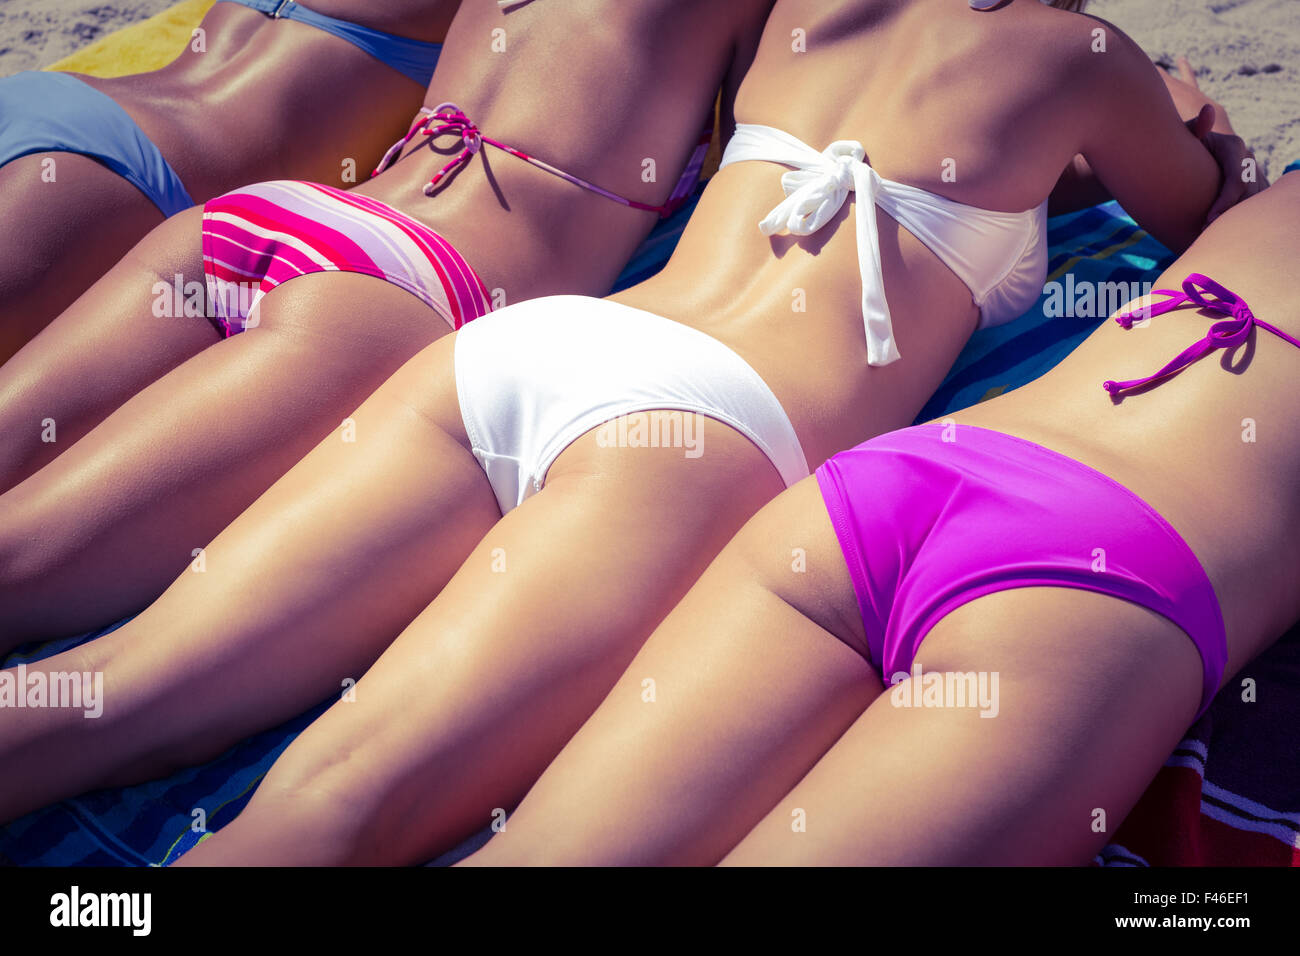 girls in bikinis sunbathing stock photo 88653573 alamy